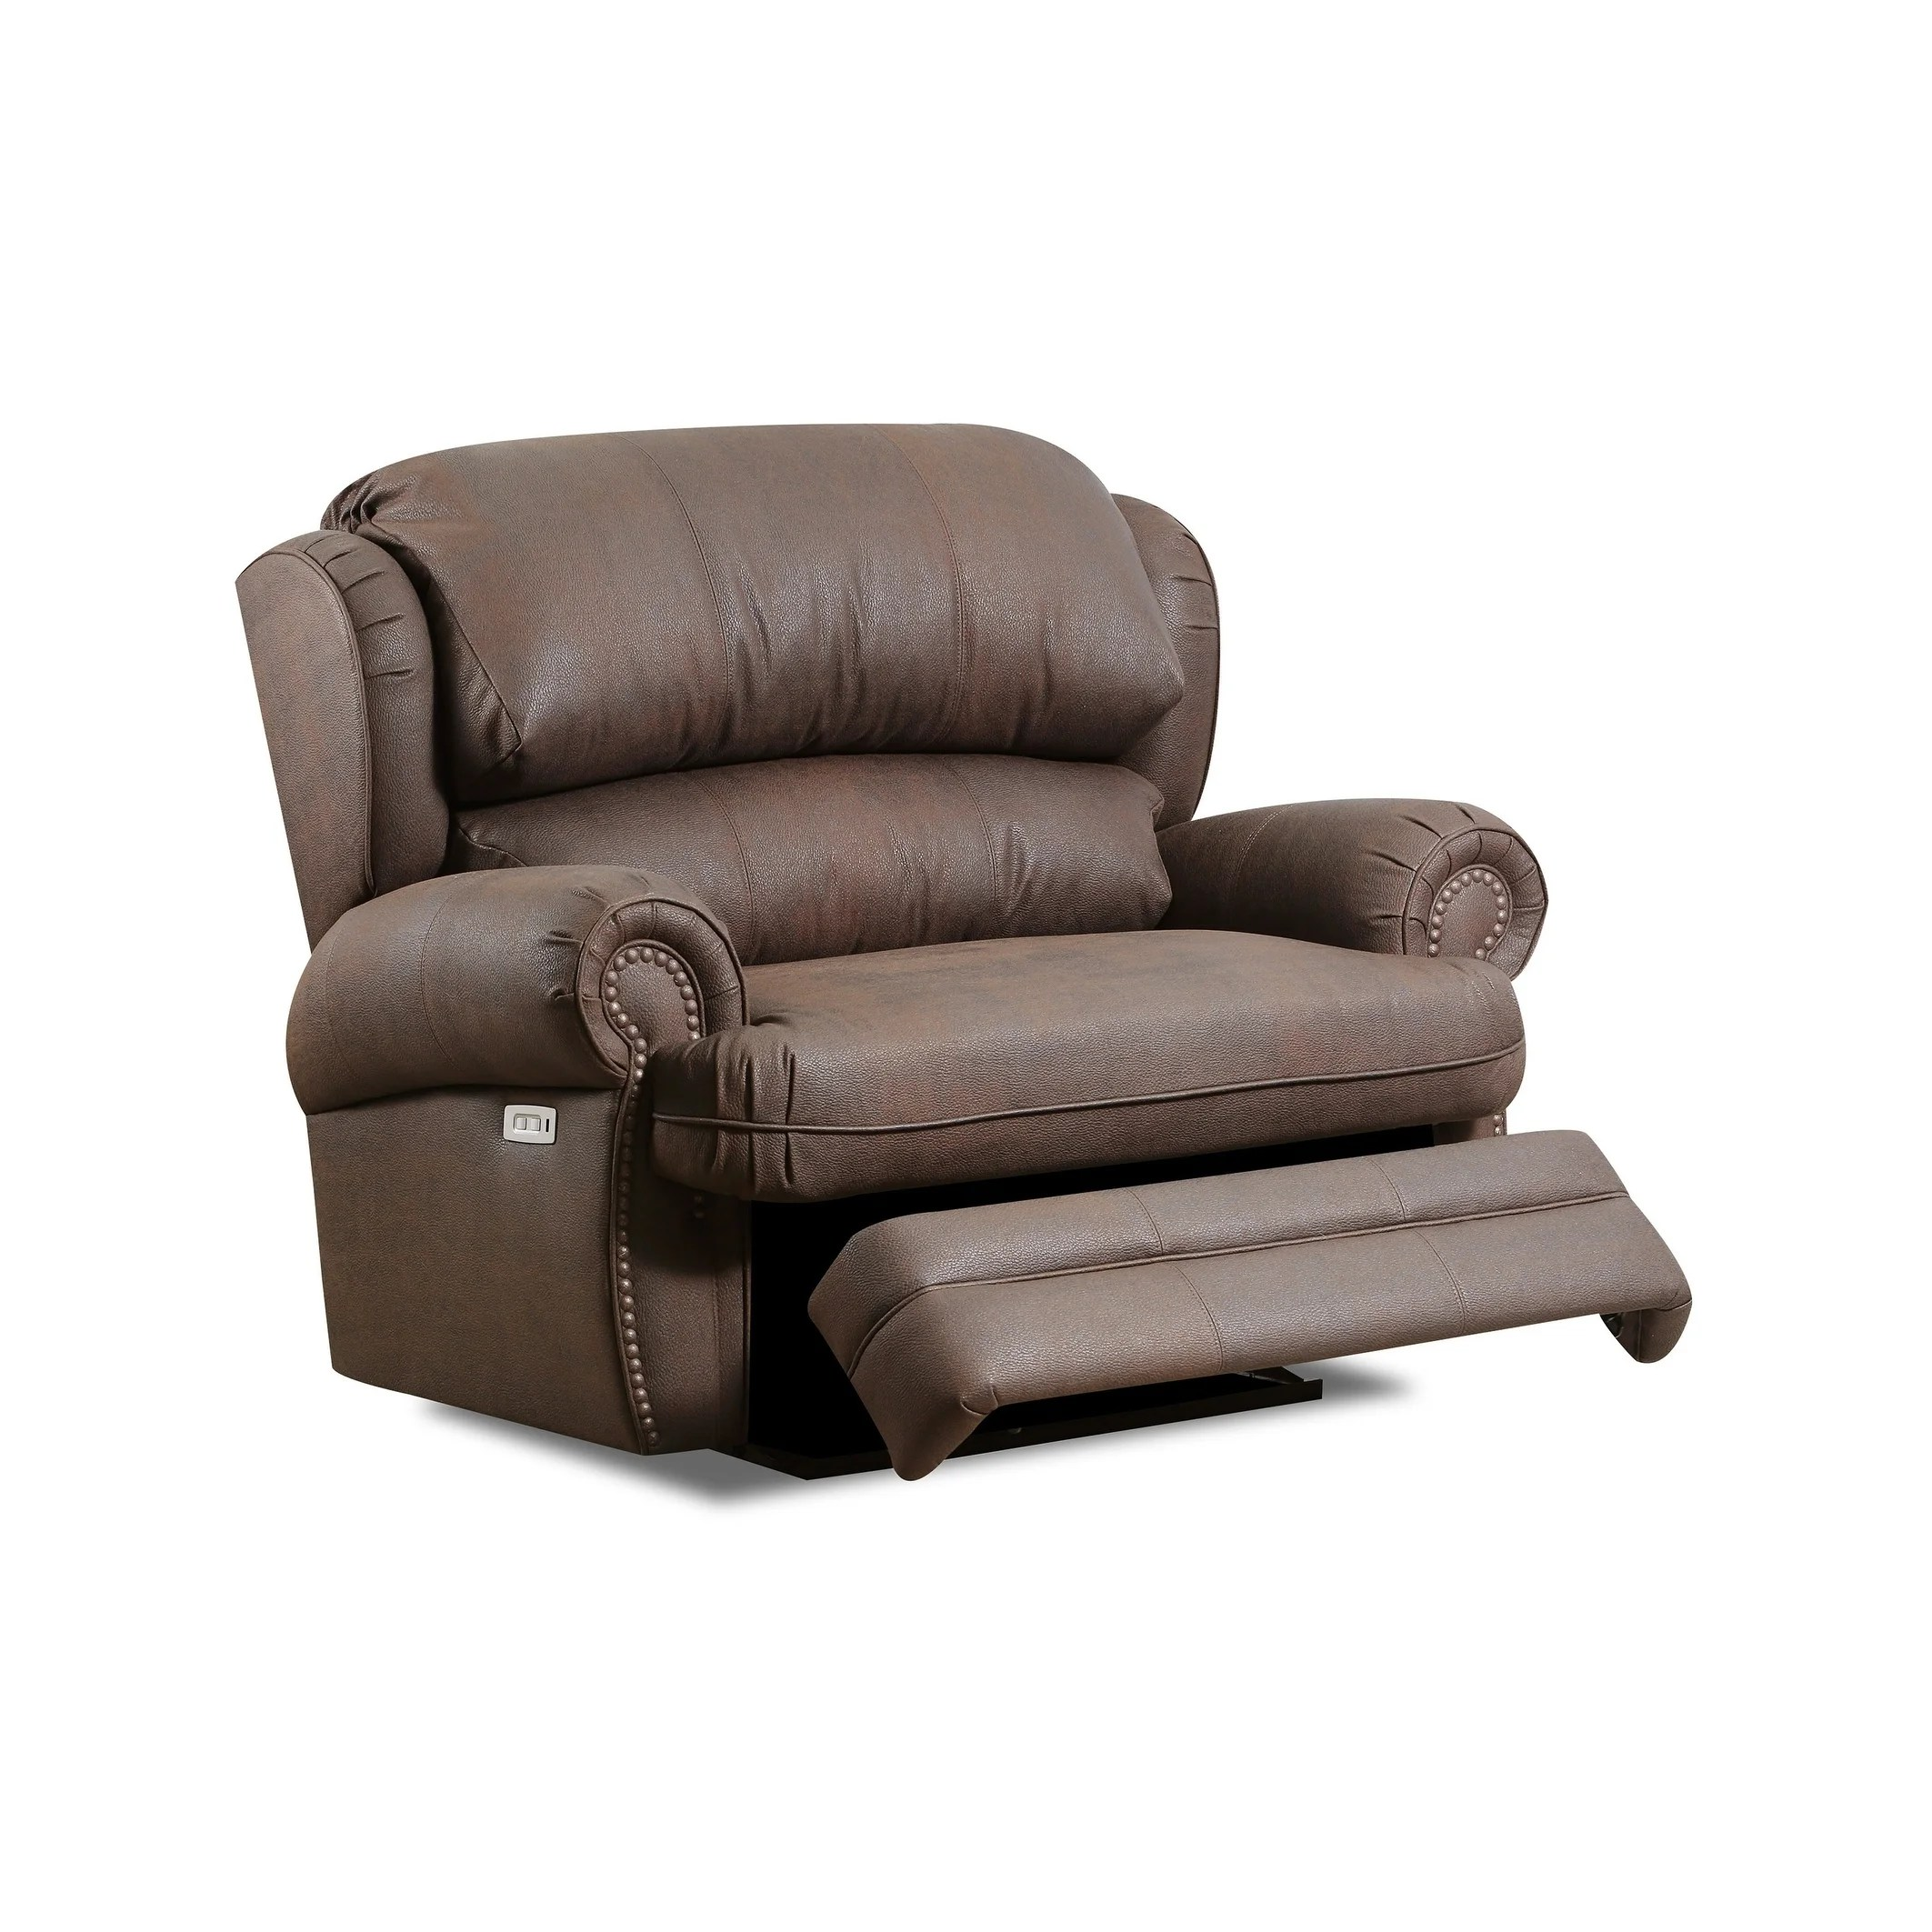 nichol faux leather cuddler power recliner